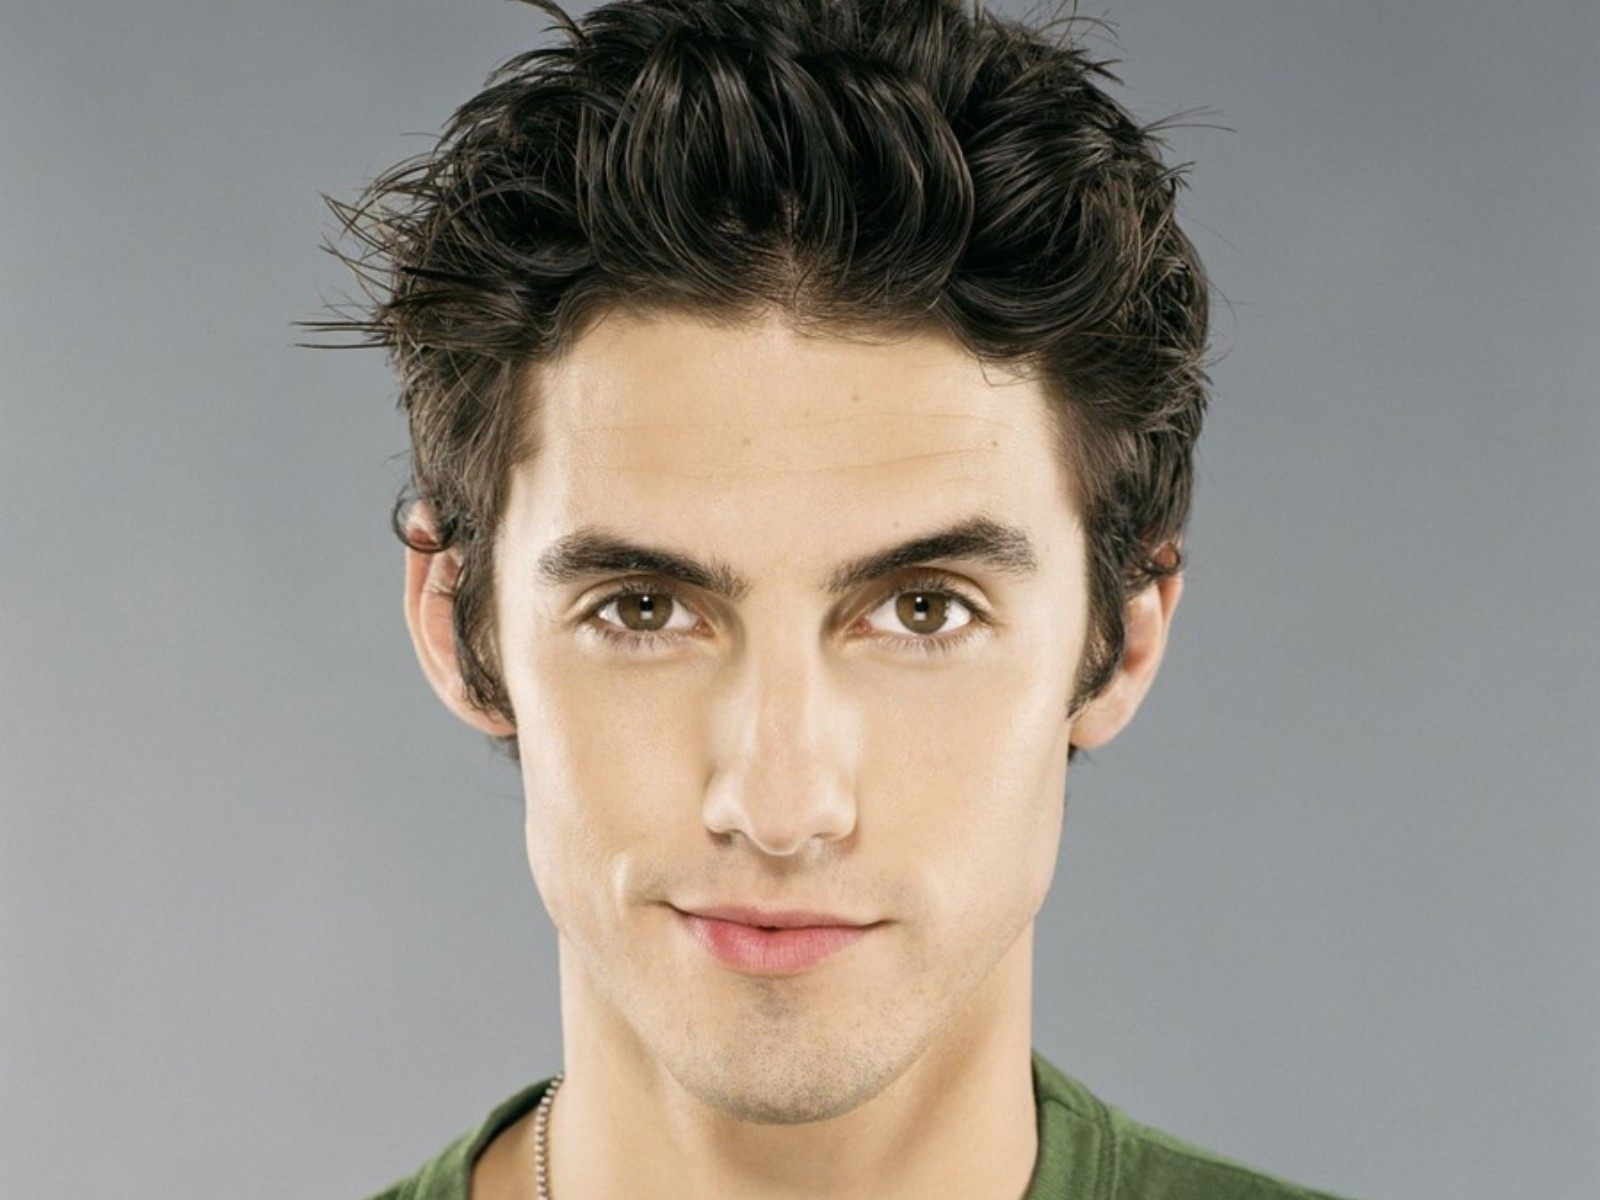 milo ventimiglia computer wallpaper 60255